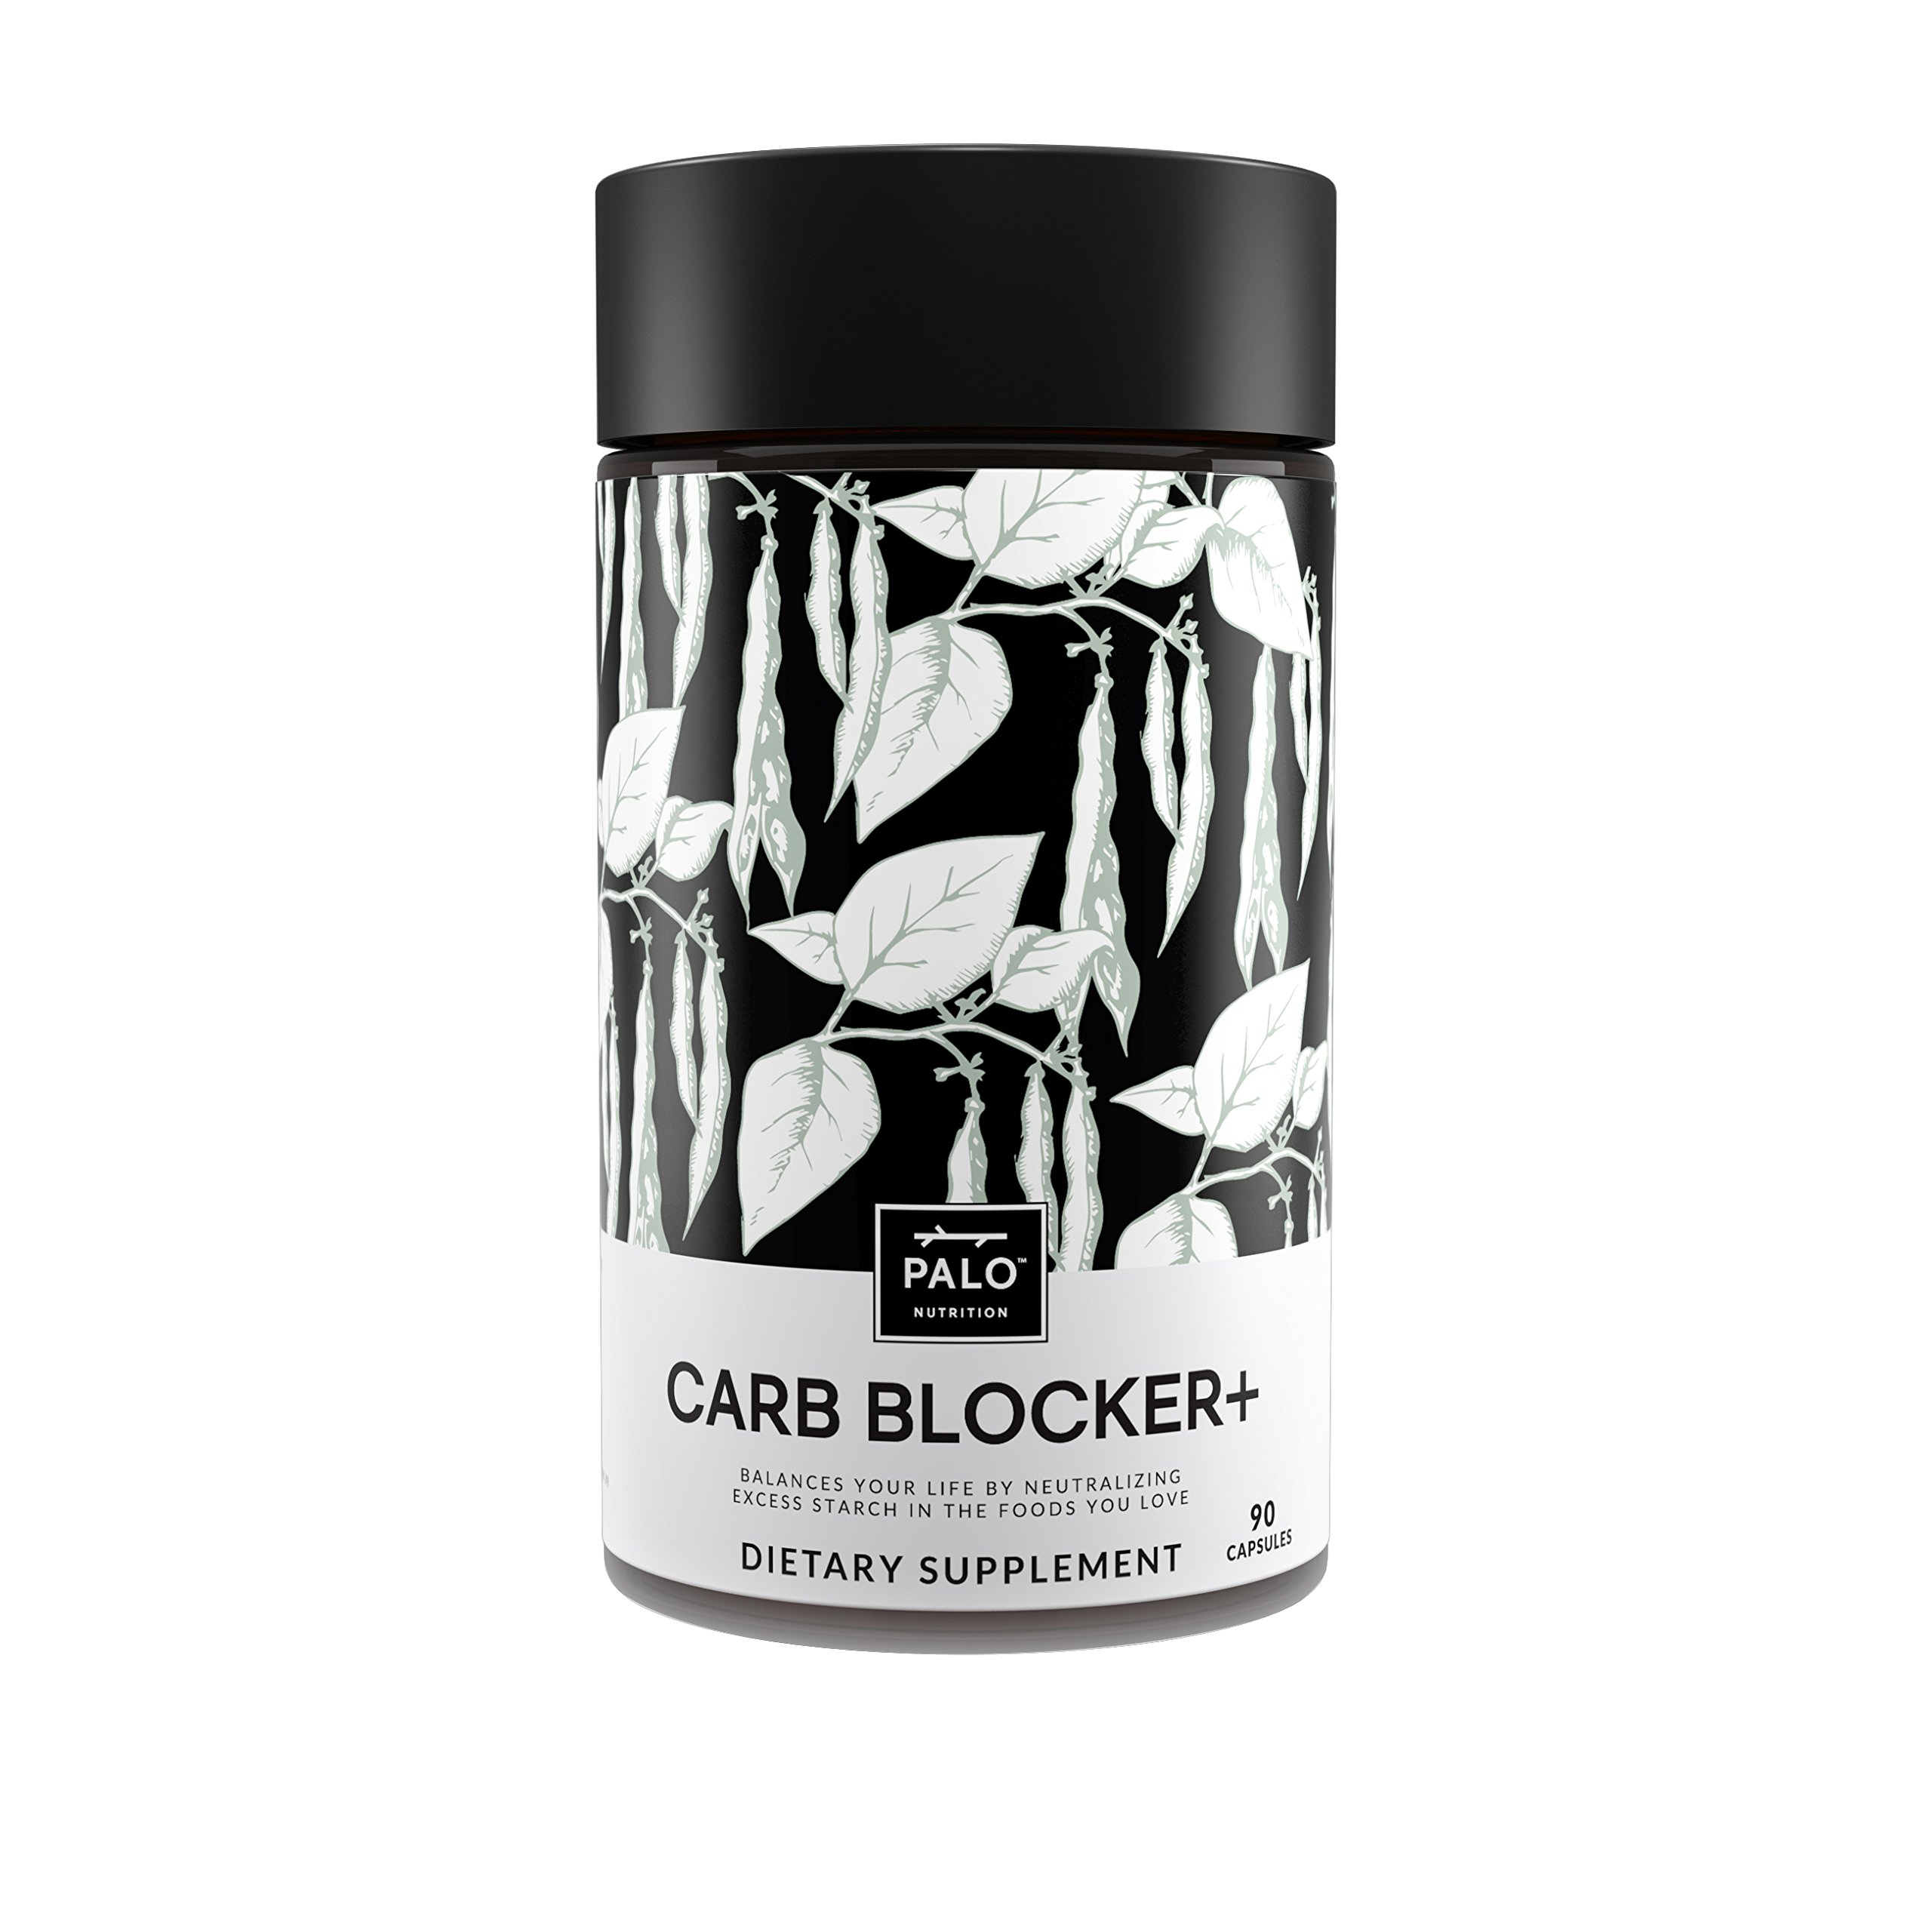 Carb Blocker+ | (90 each)-Innovative formula composed of White Kidney Bean Extract, White Mulberry and Chromium| Support Weight Loss, Boost Metabolism and help control blood sugar | By PALO Nutrition